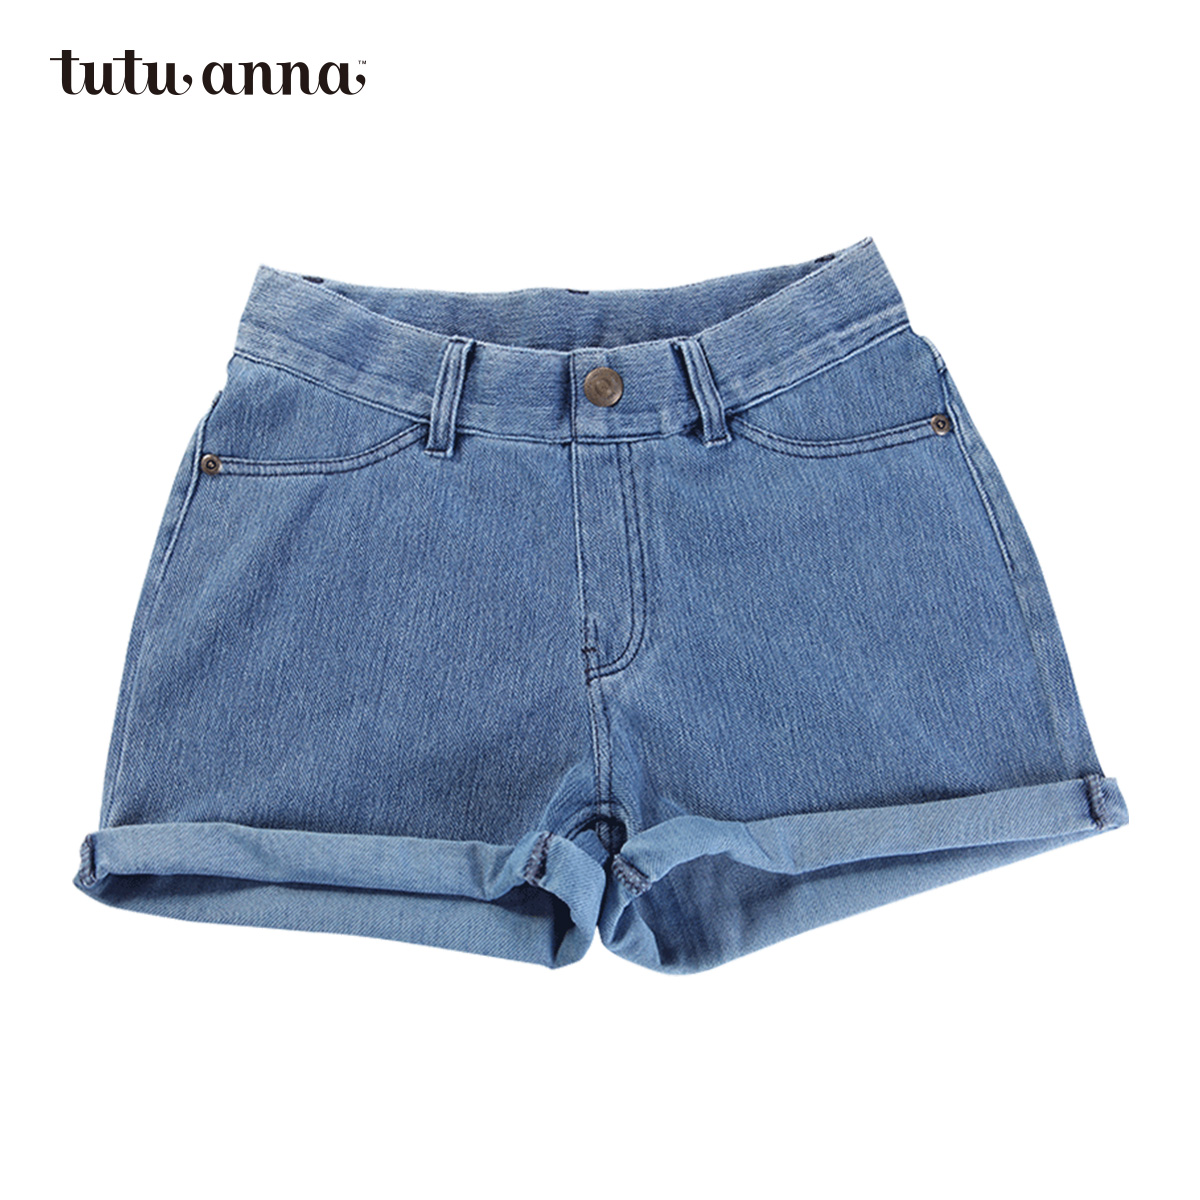 Tutuanna ms. xia jiqing new wild comfortable casual cotton denim shorts shorts